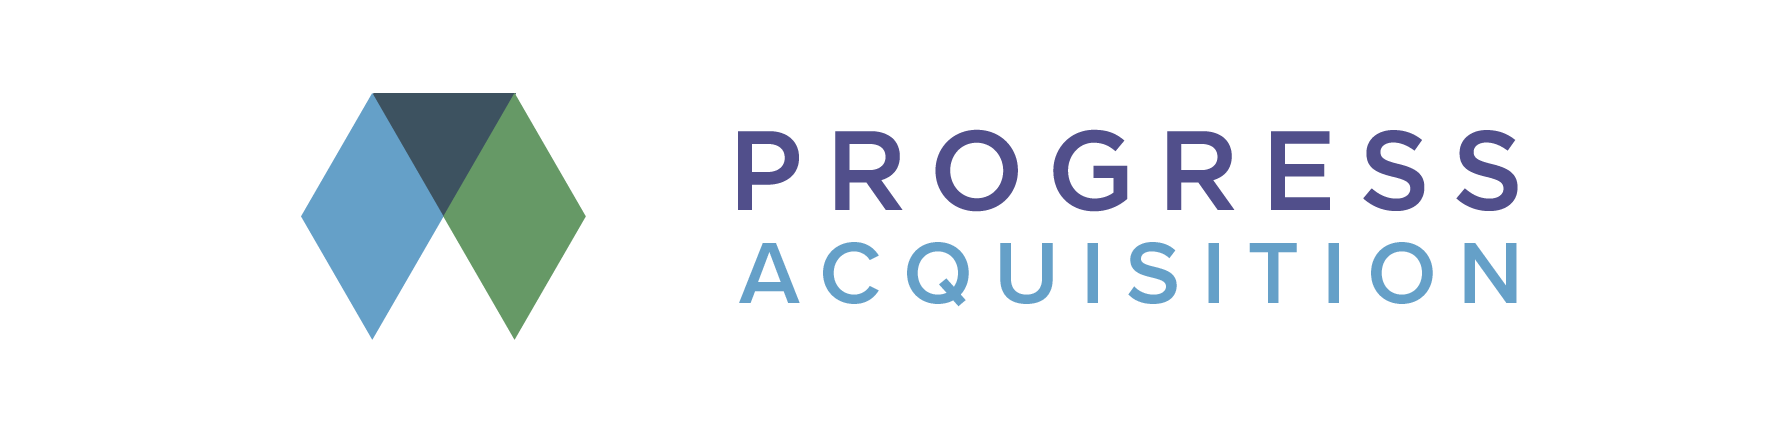 Progress Acquisition Corp. Announces the Separate Trading of Its Class A Common Stock and Warrants, Commencing March 16, 2021